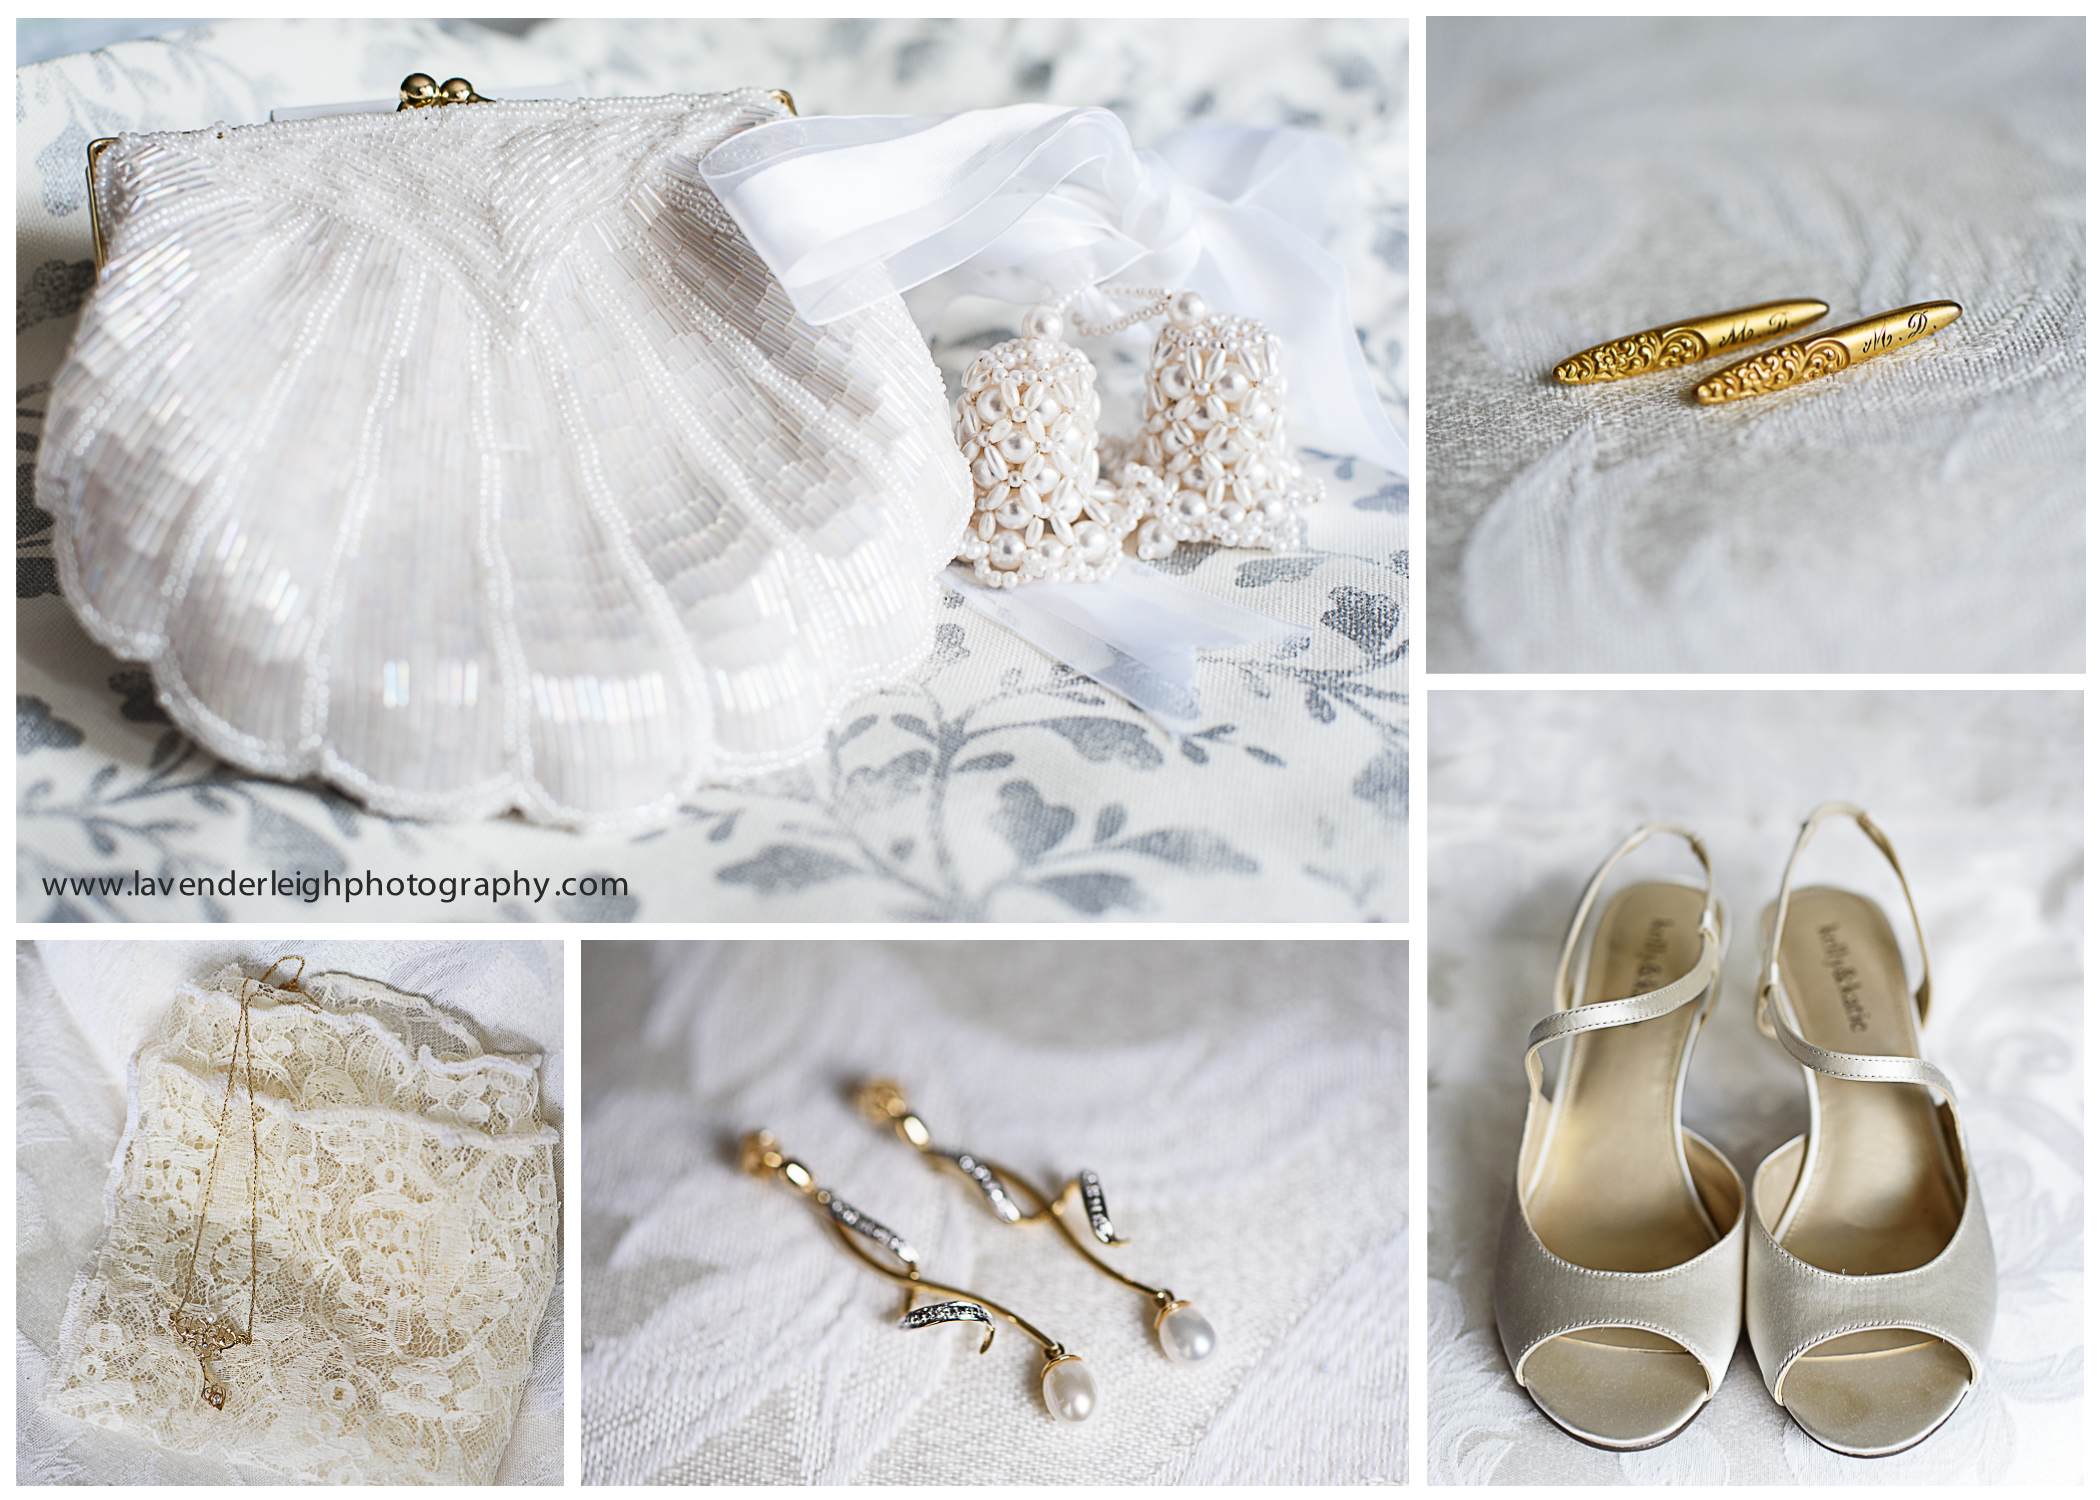 Wedding Details | Great Grandmother